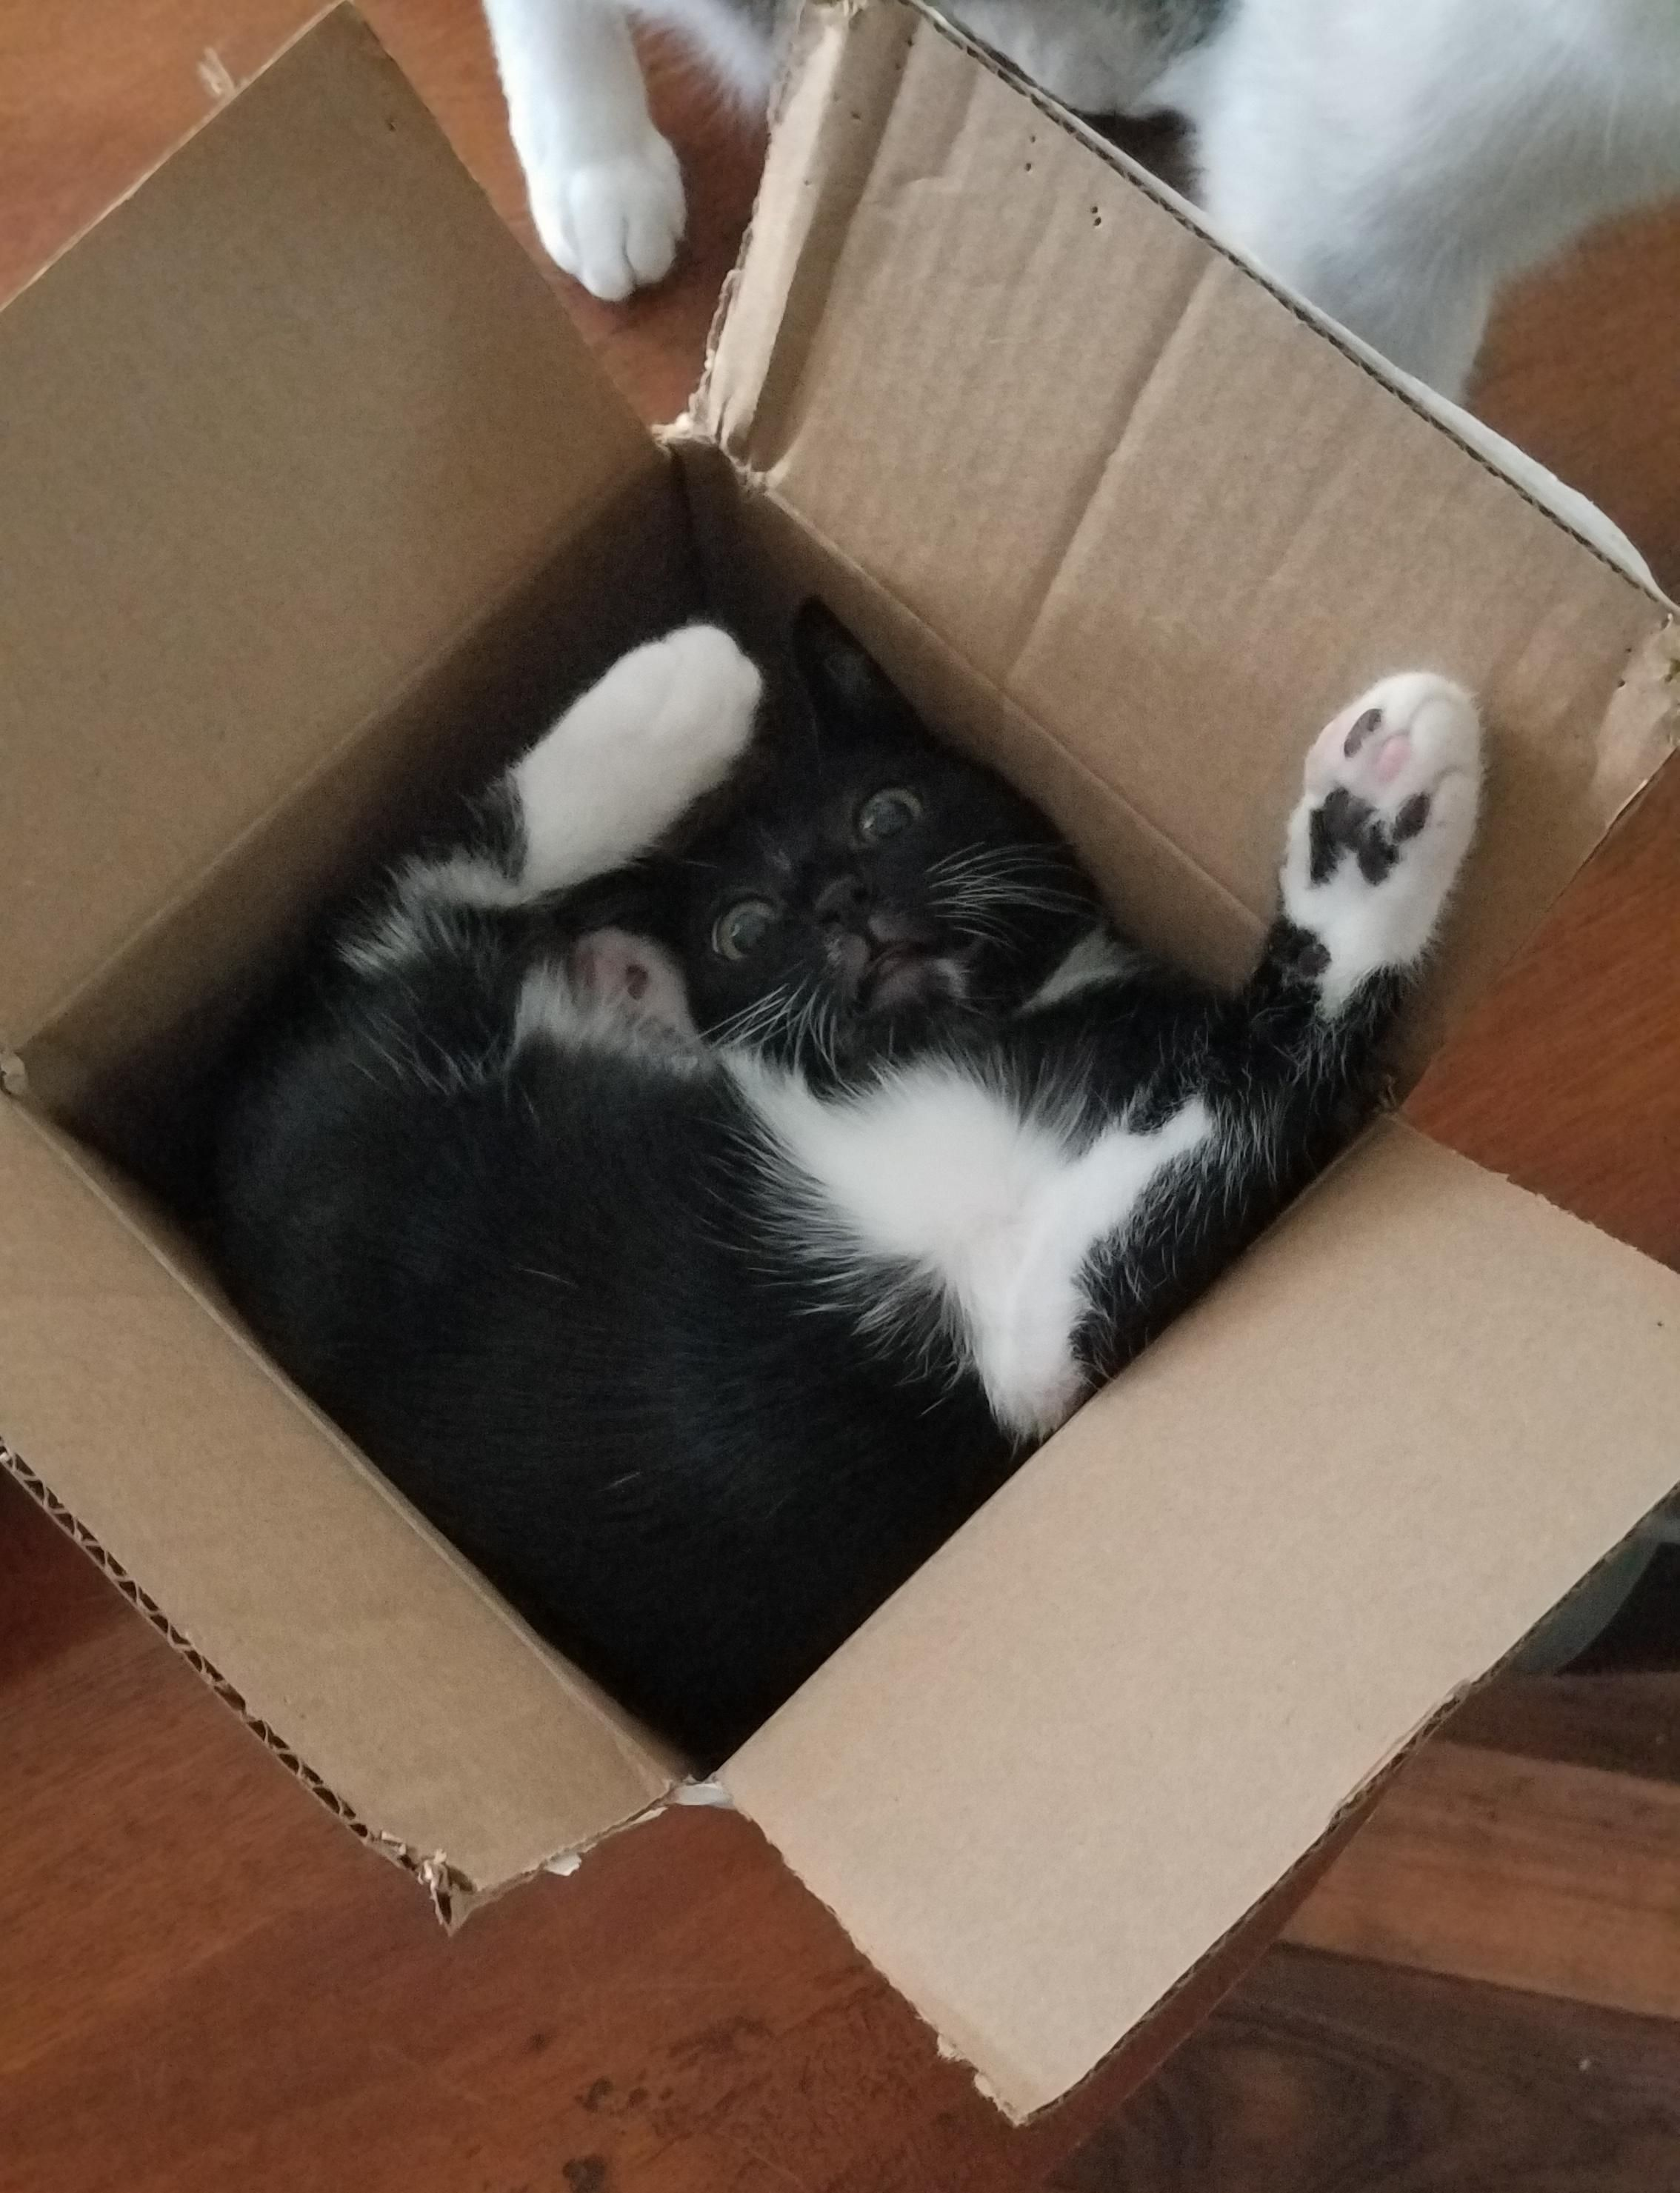 That's one way to sit in a box, I guess.